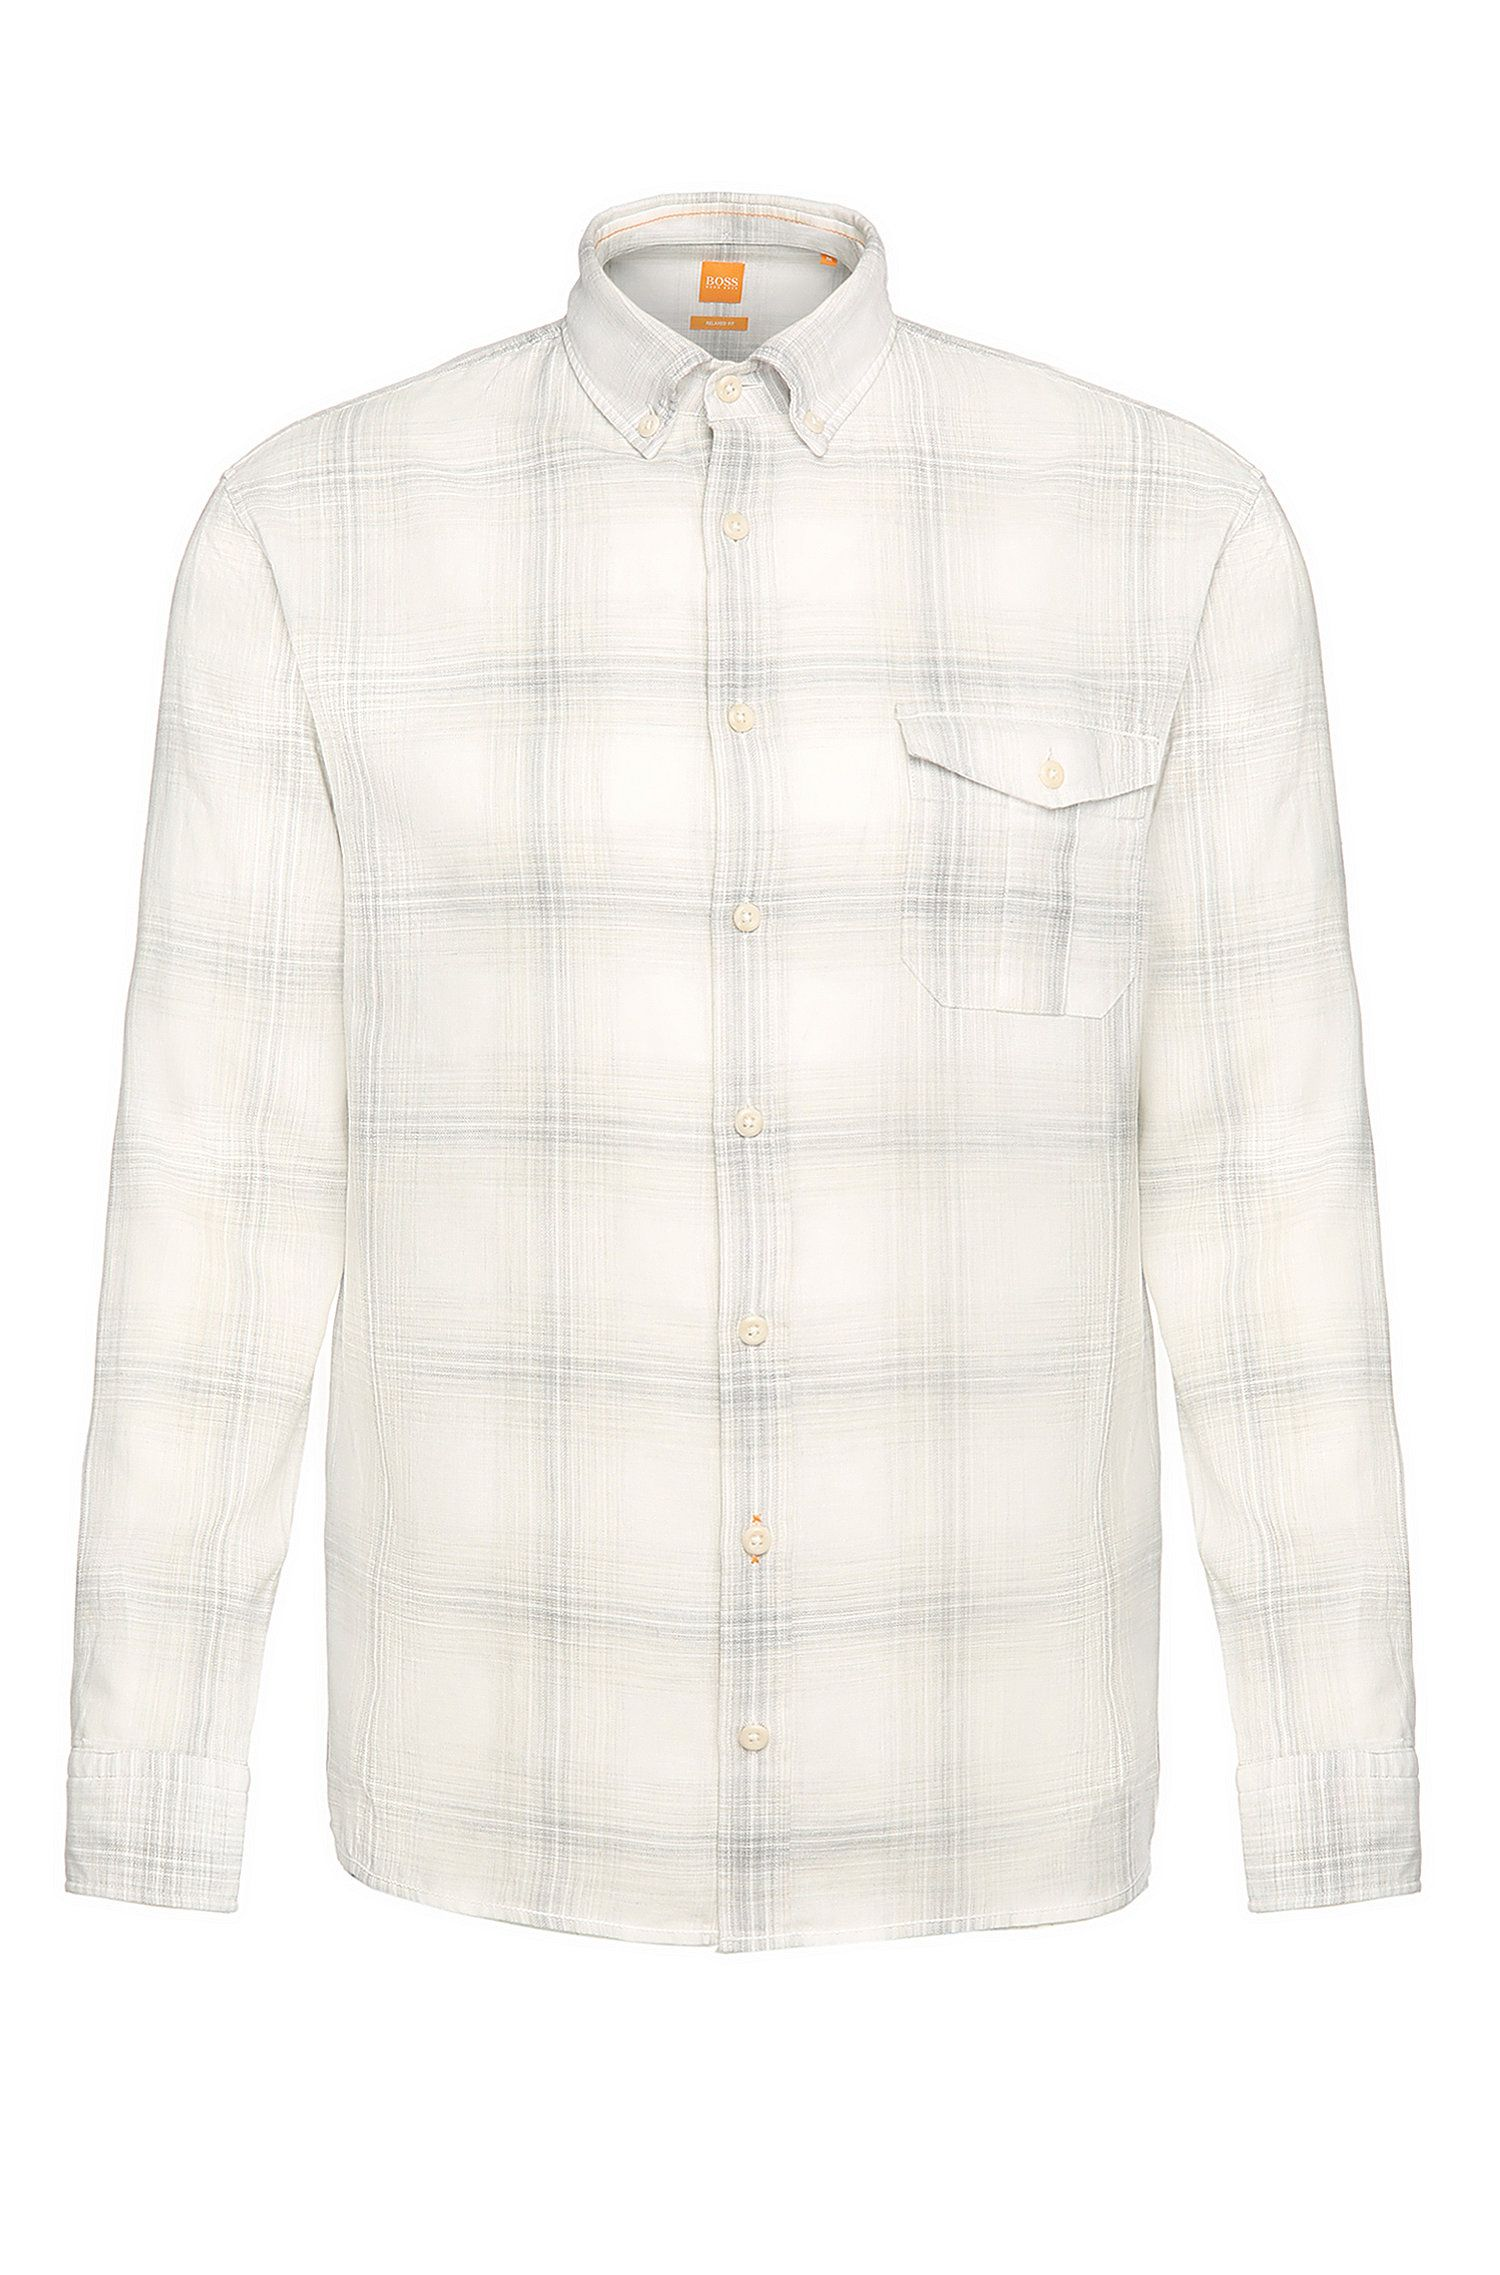 'Elabor' | Regular Fit, Cotton Linen Plaid Button Down Shirt